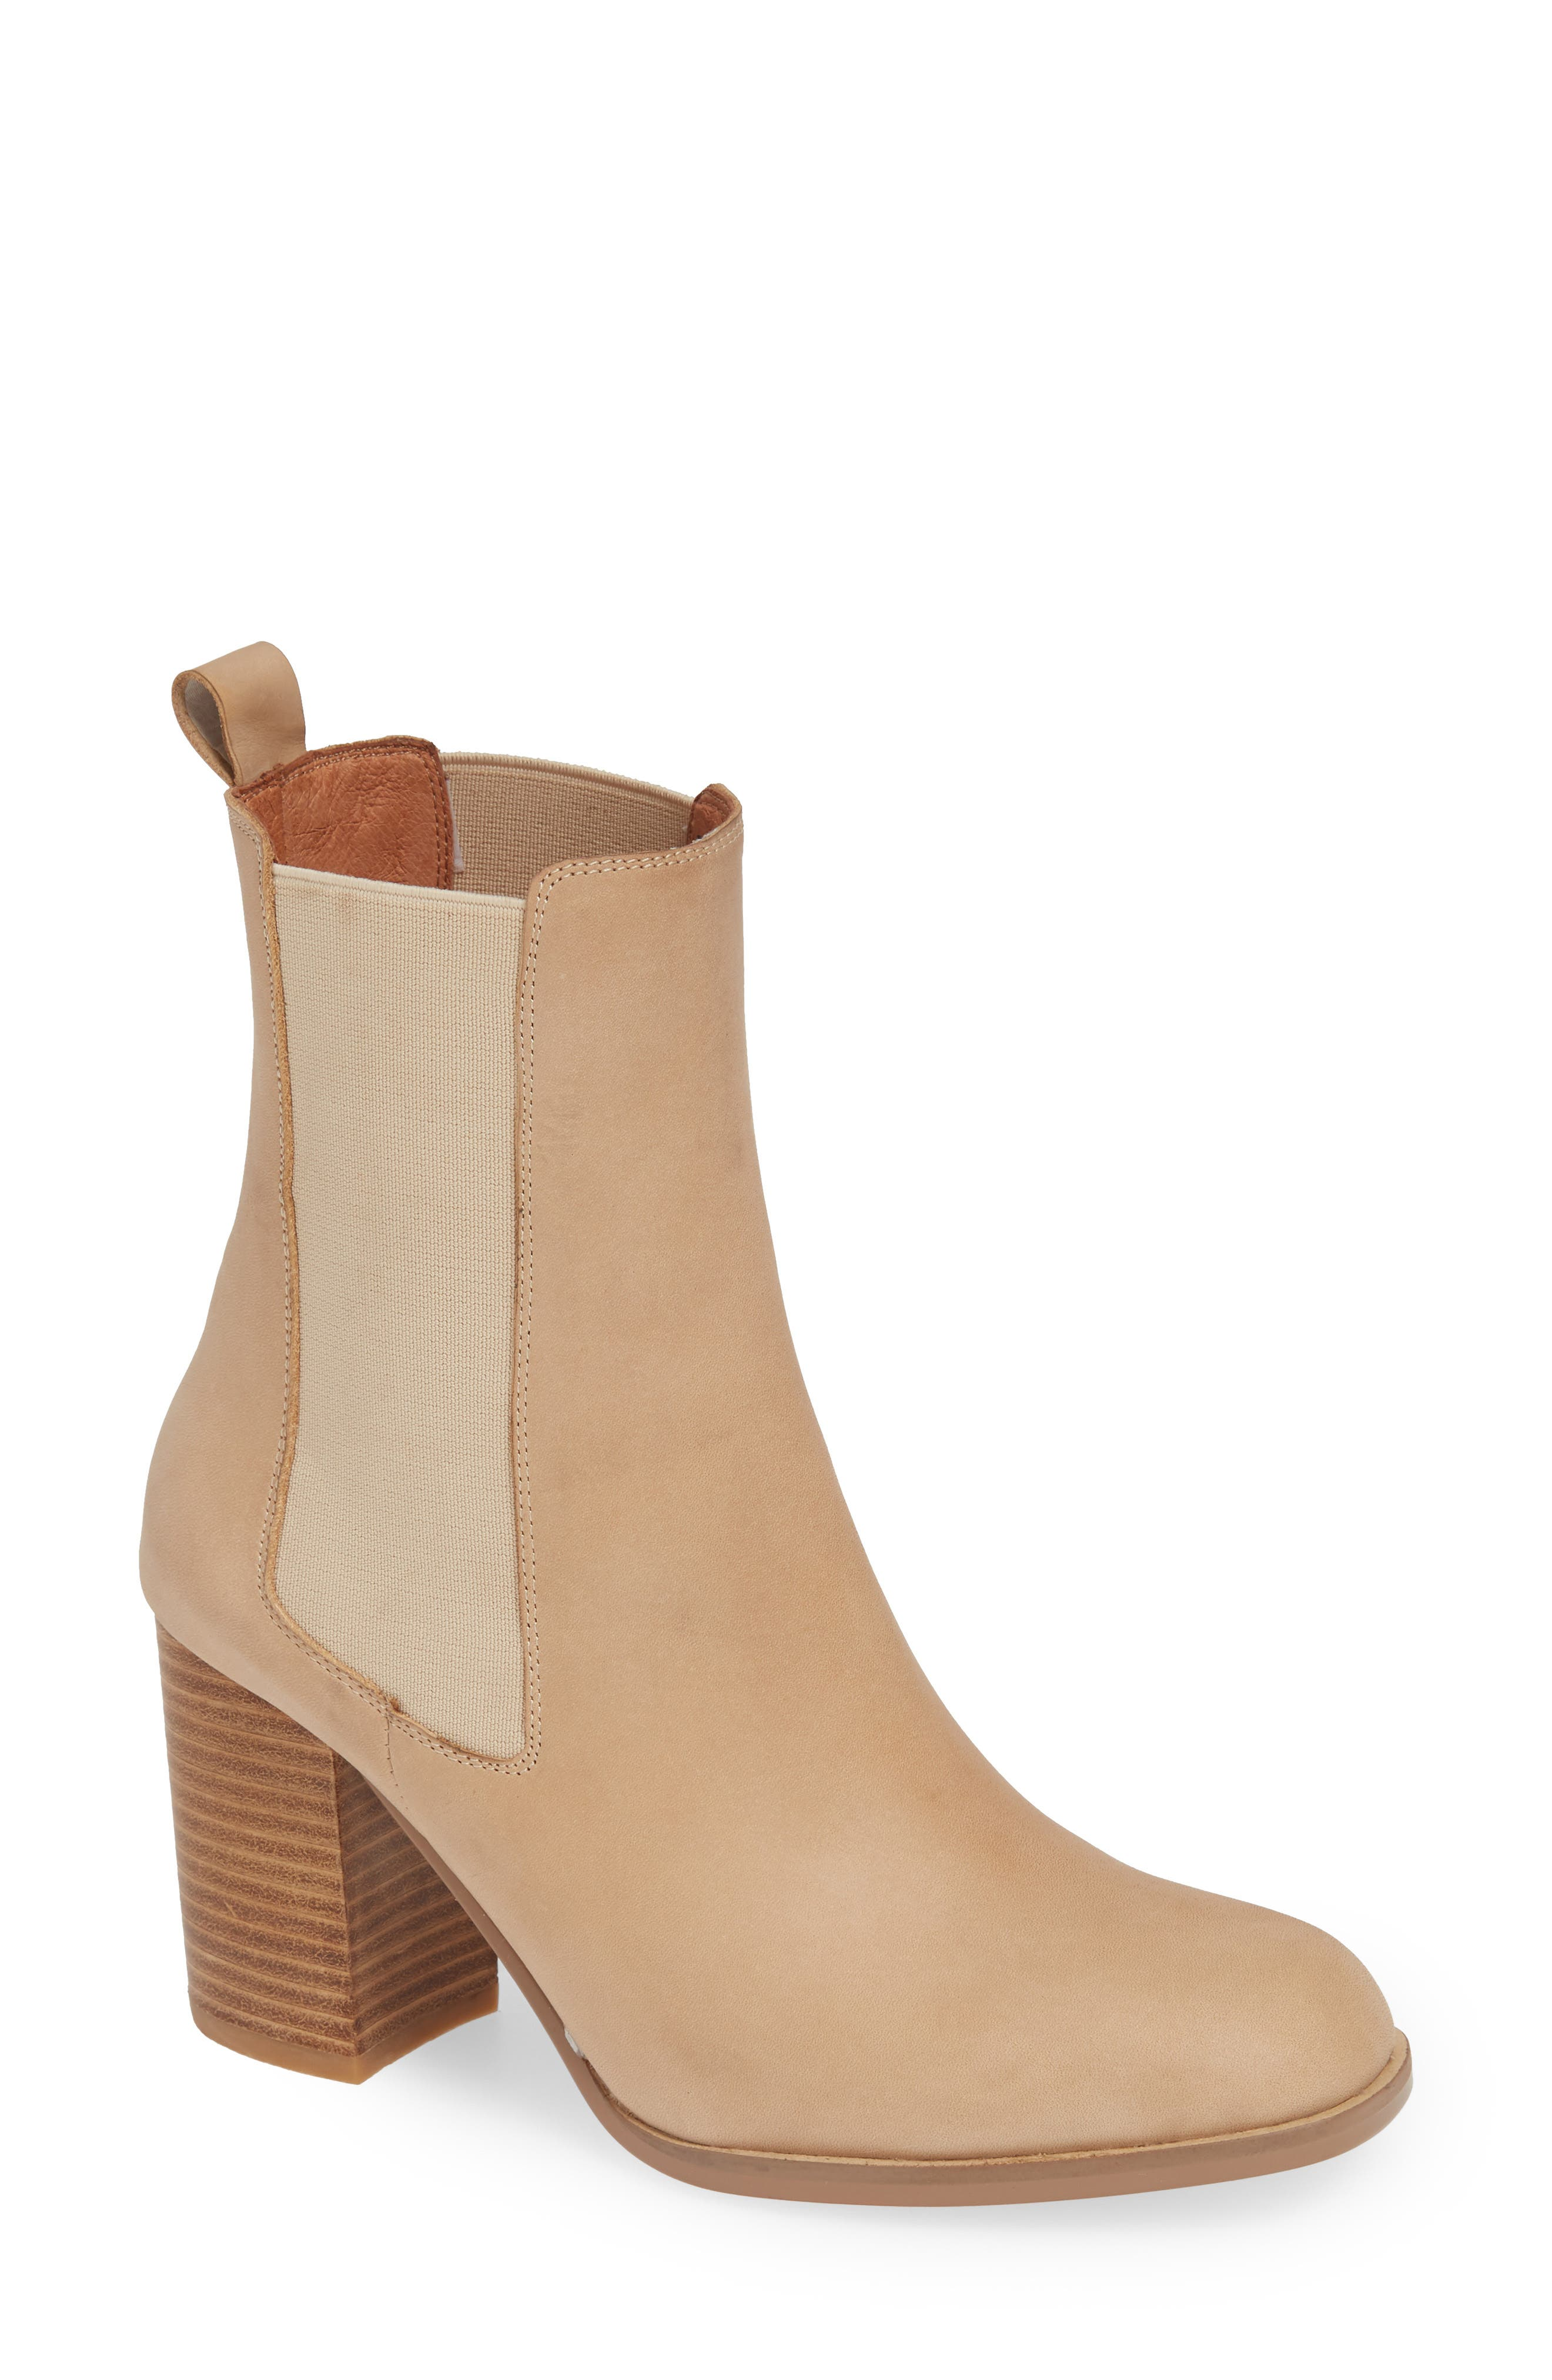 ALIAS MAE Nyala Chelsea Bootie in Natural Leather